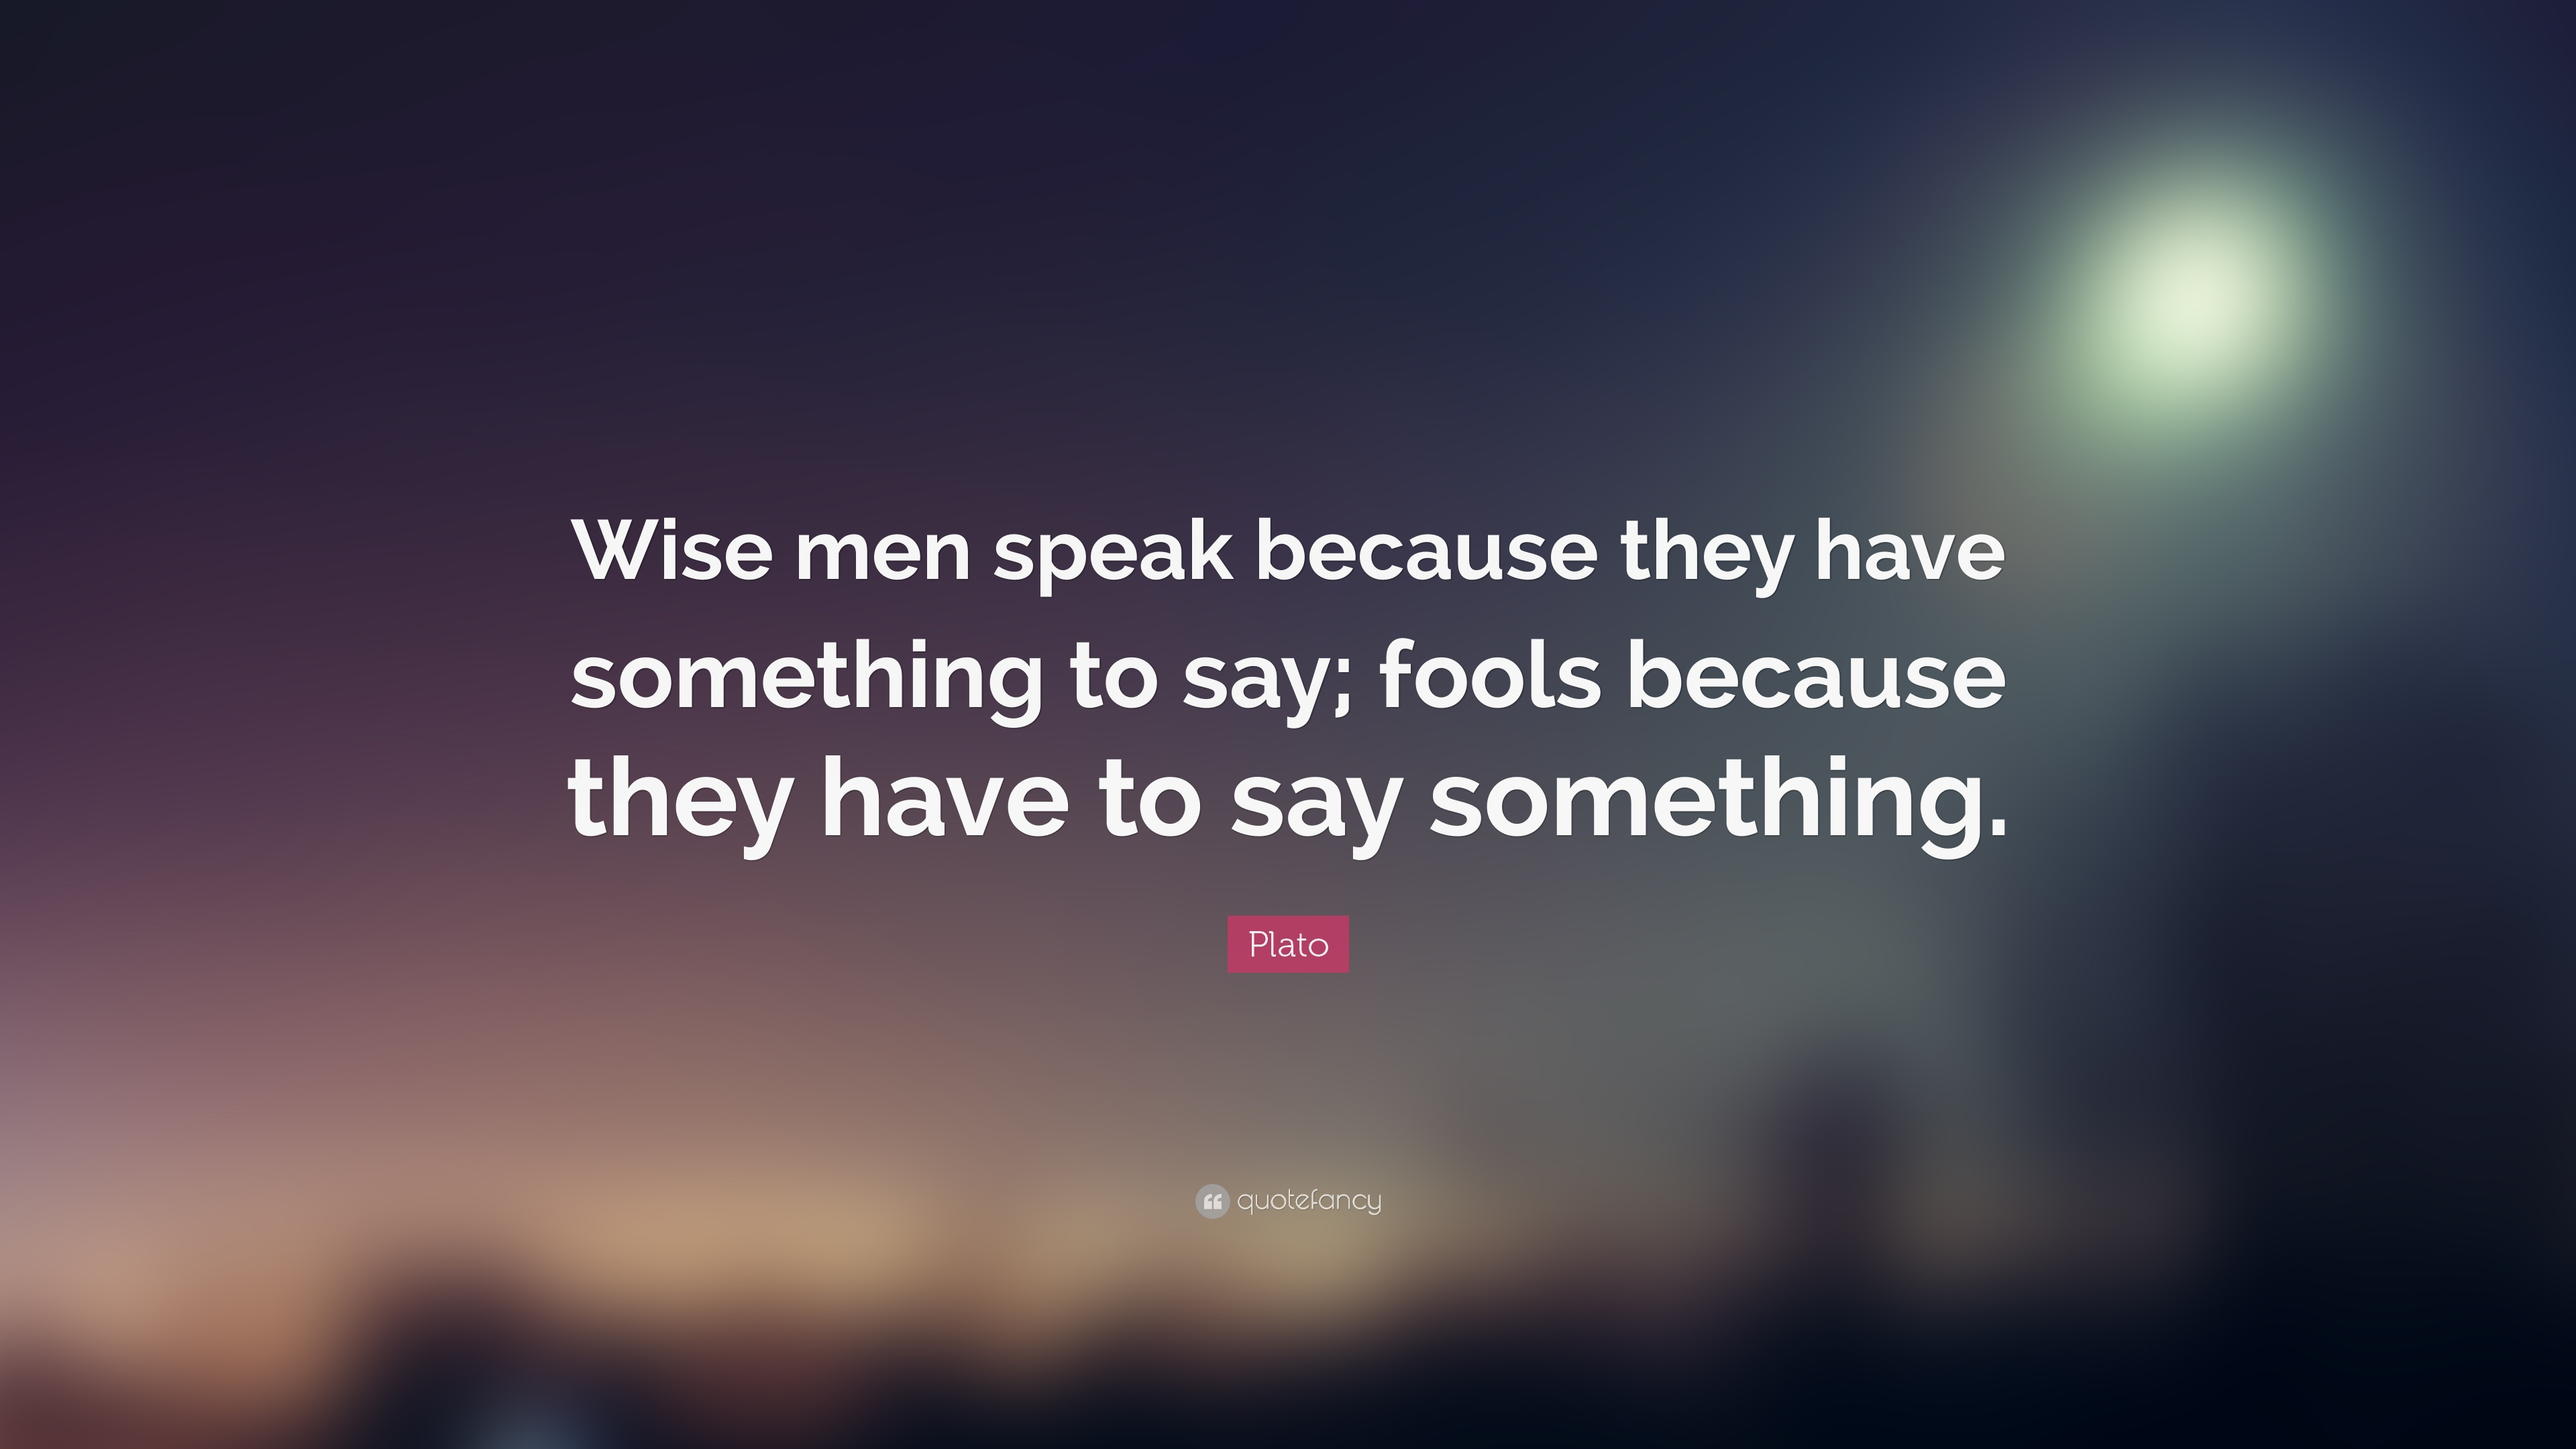 plato quote wise men speak because they have something to say plato quote wise men speak because they have something to say fools because